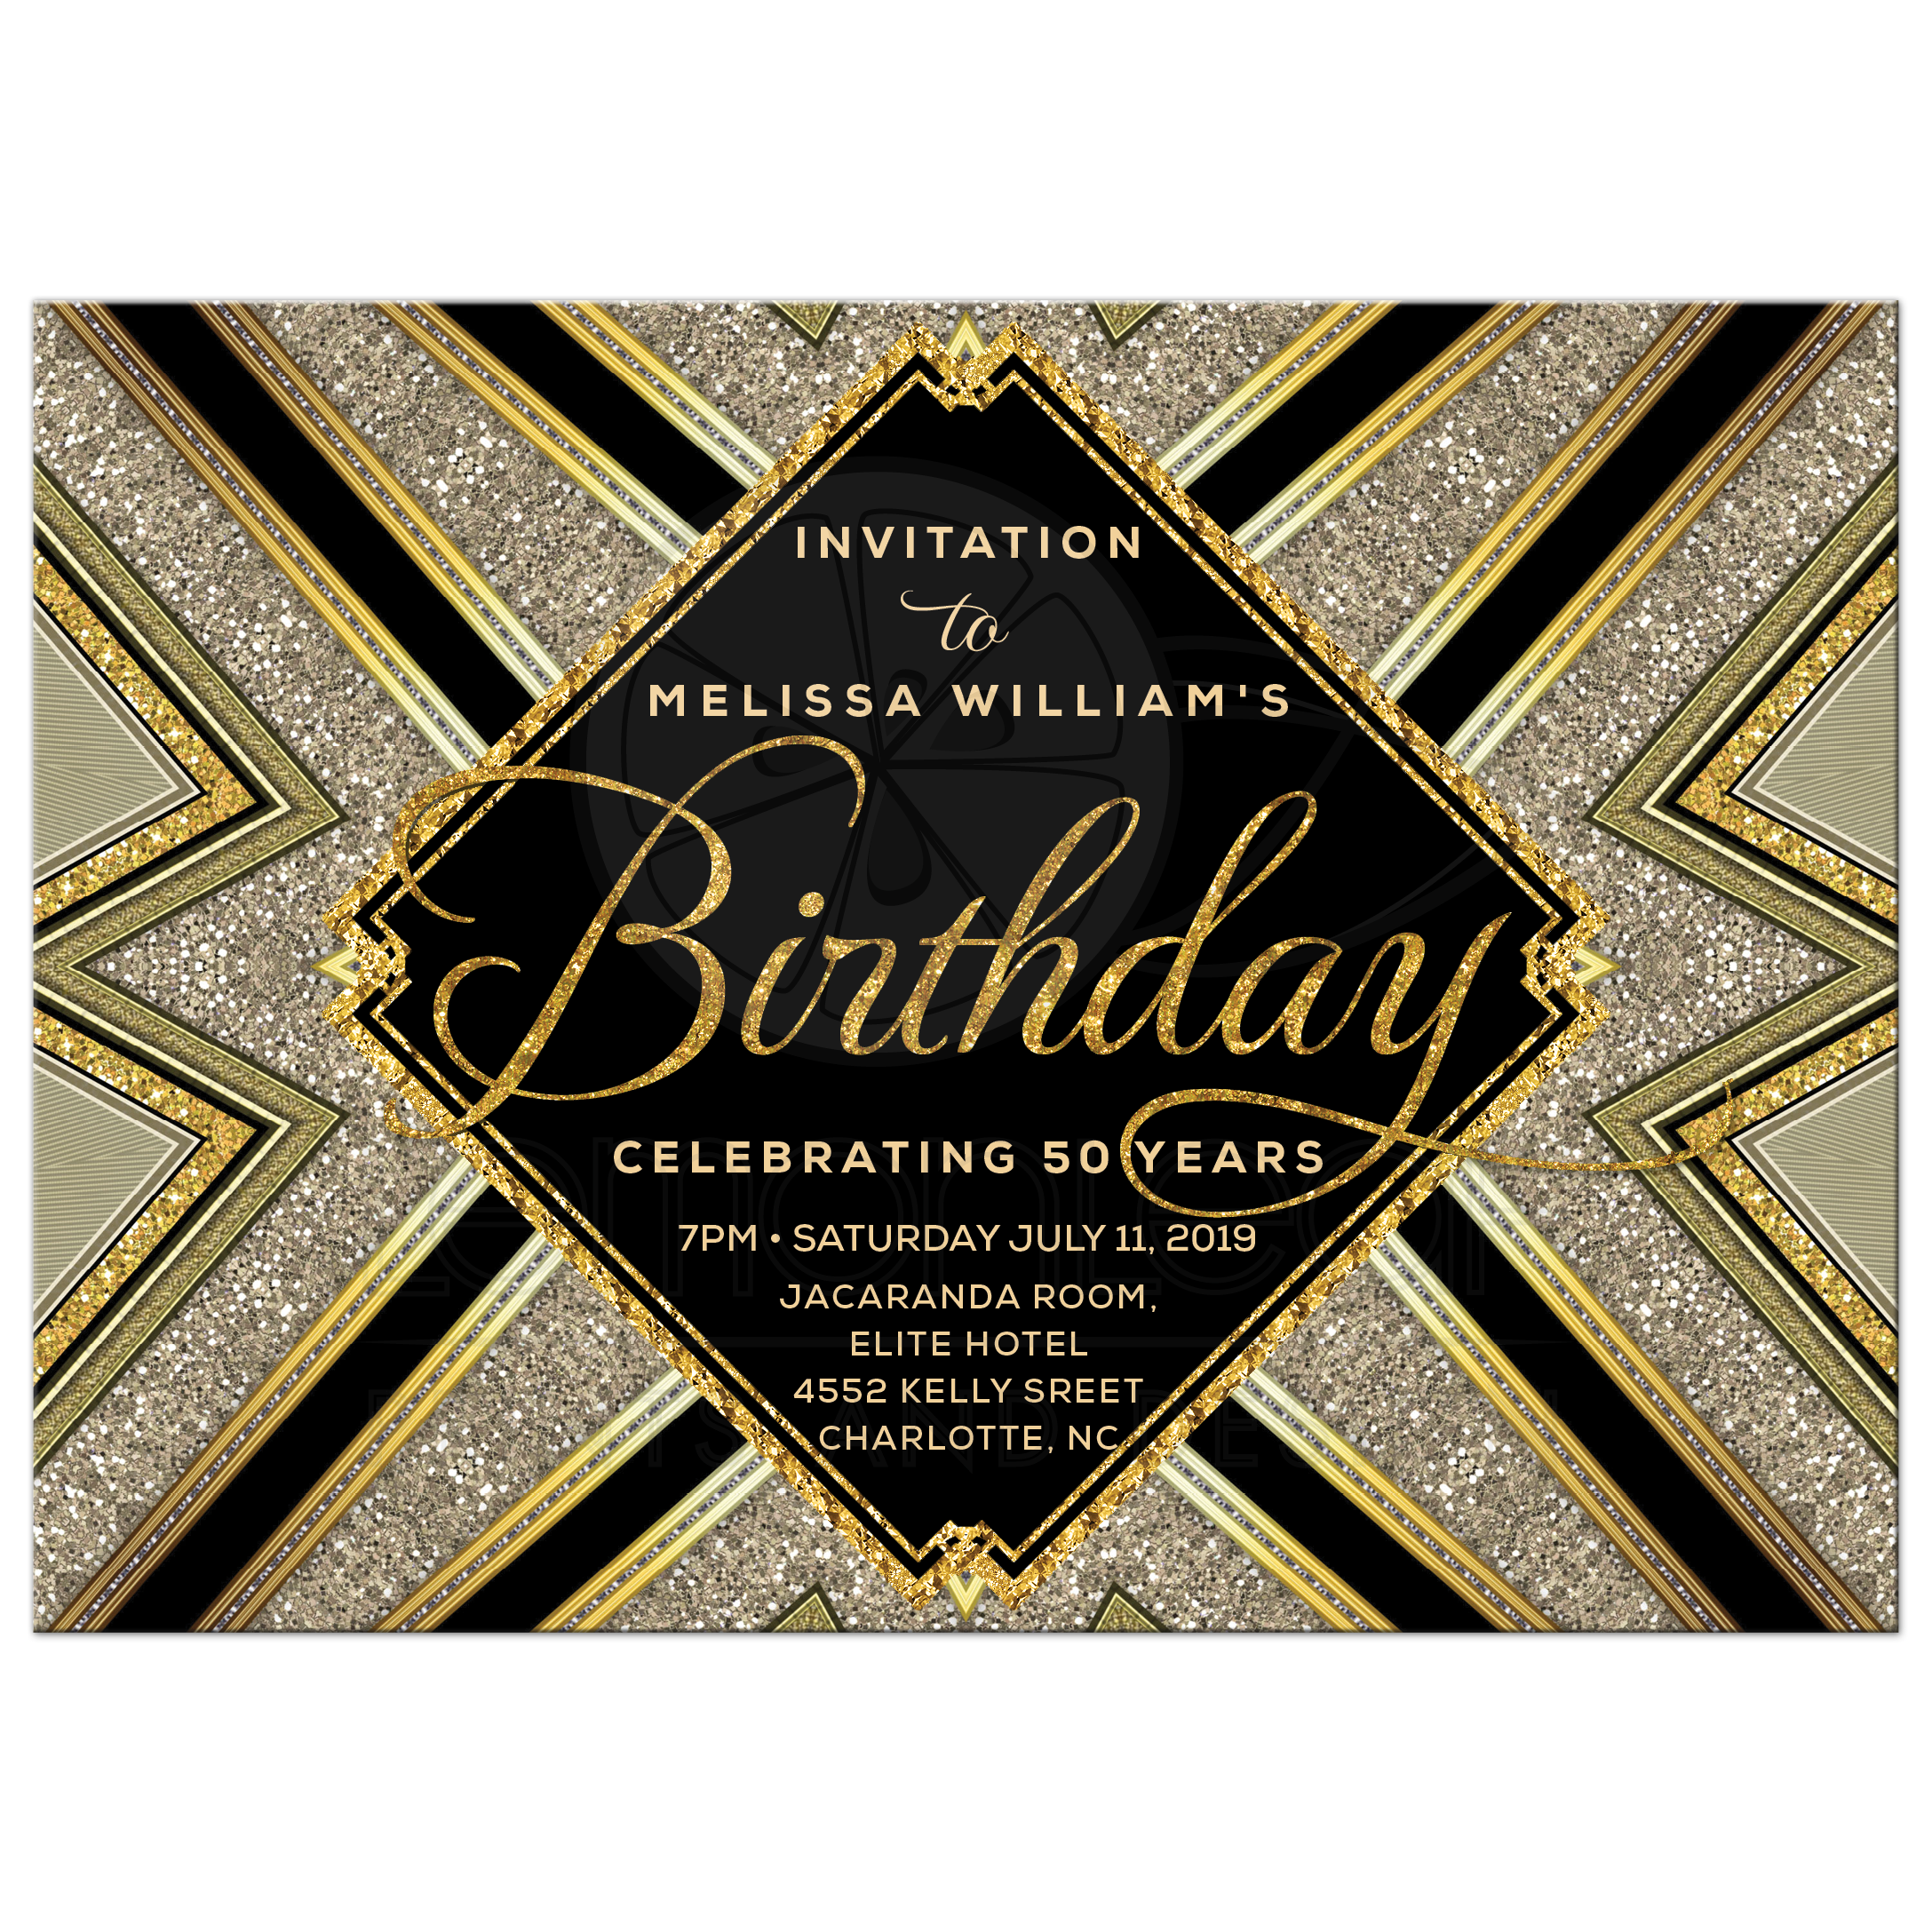 Sparkle Glam Deco Black and Gold Birthday Invitation